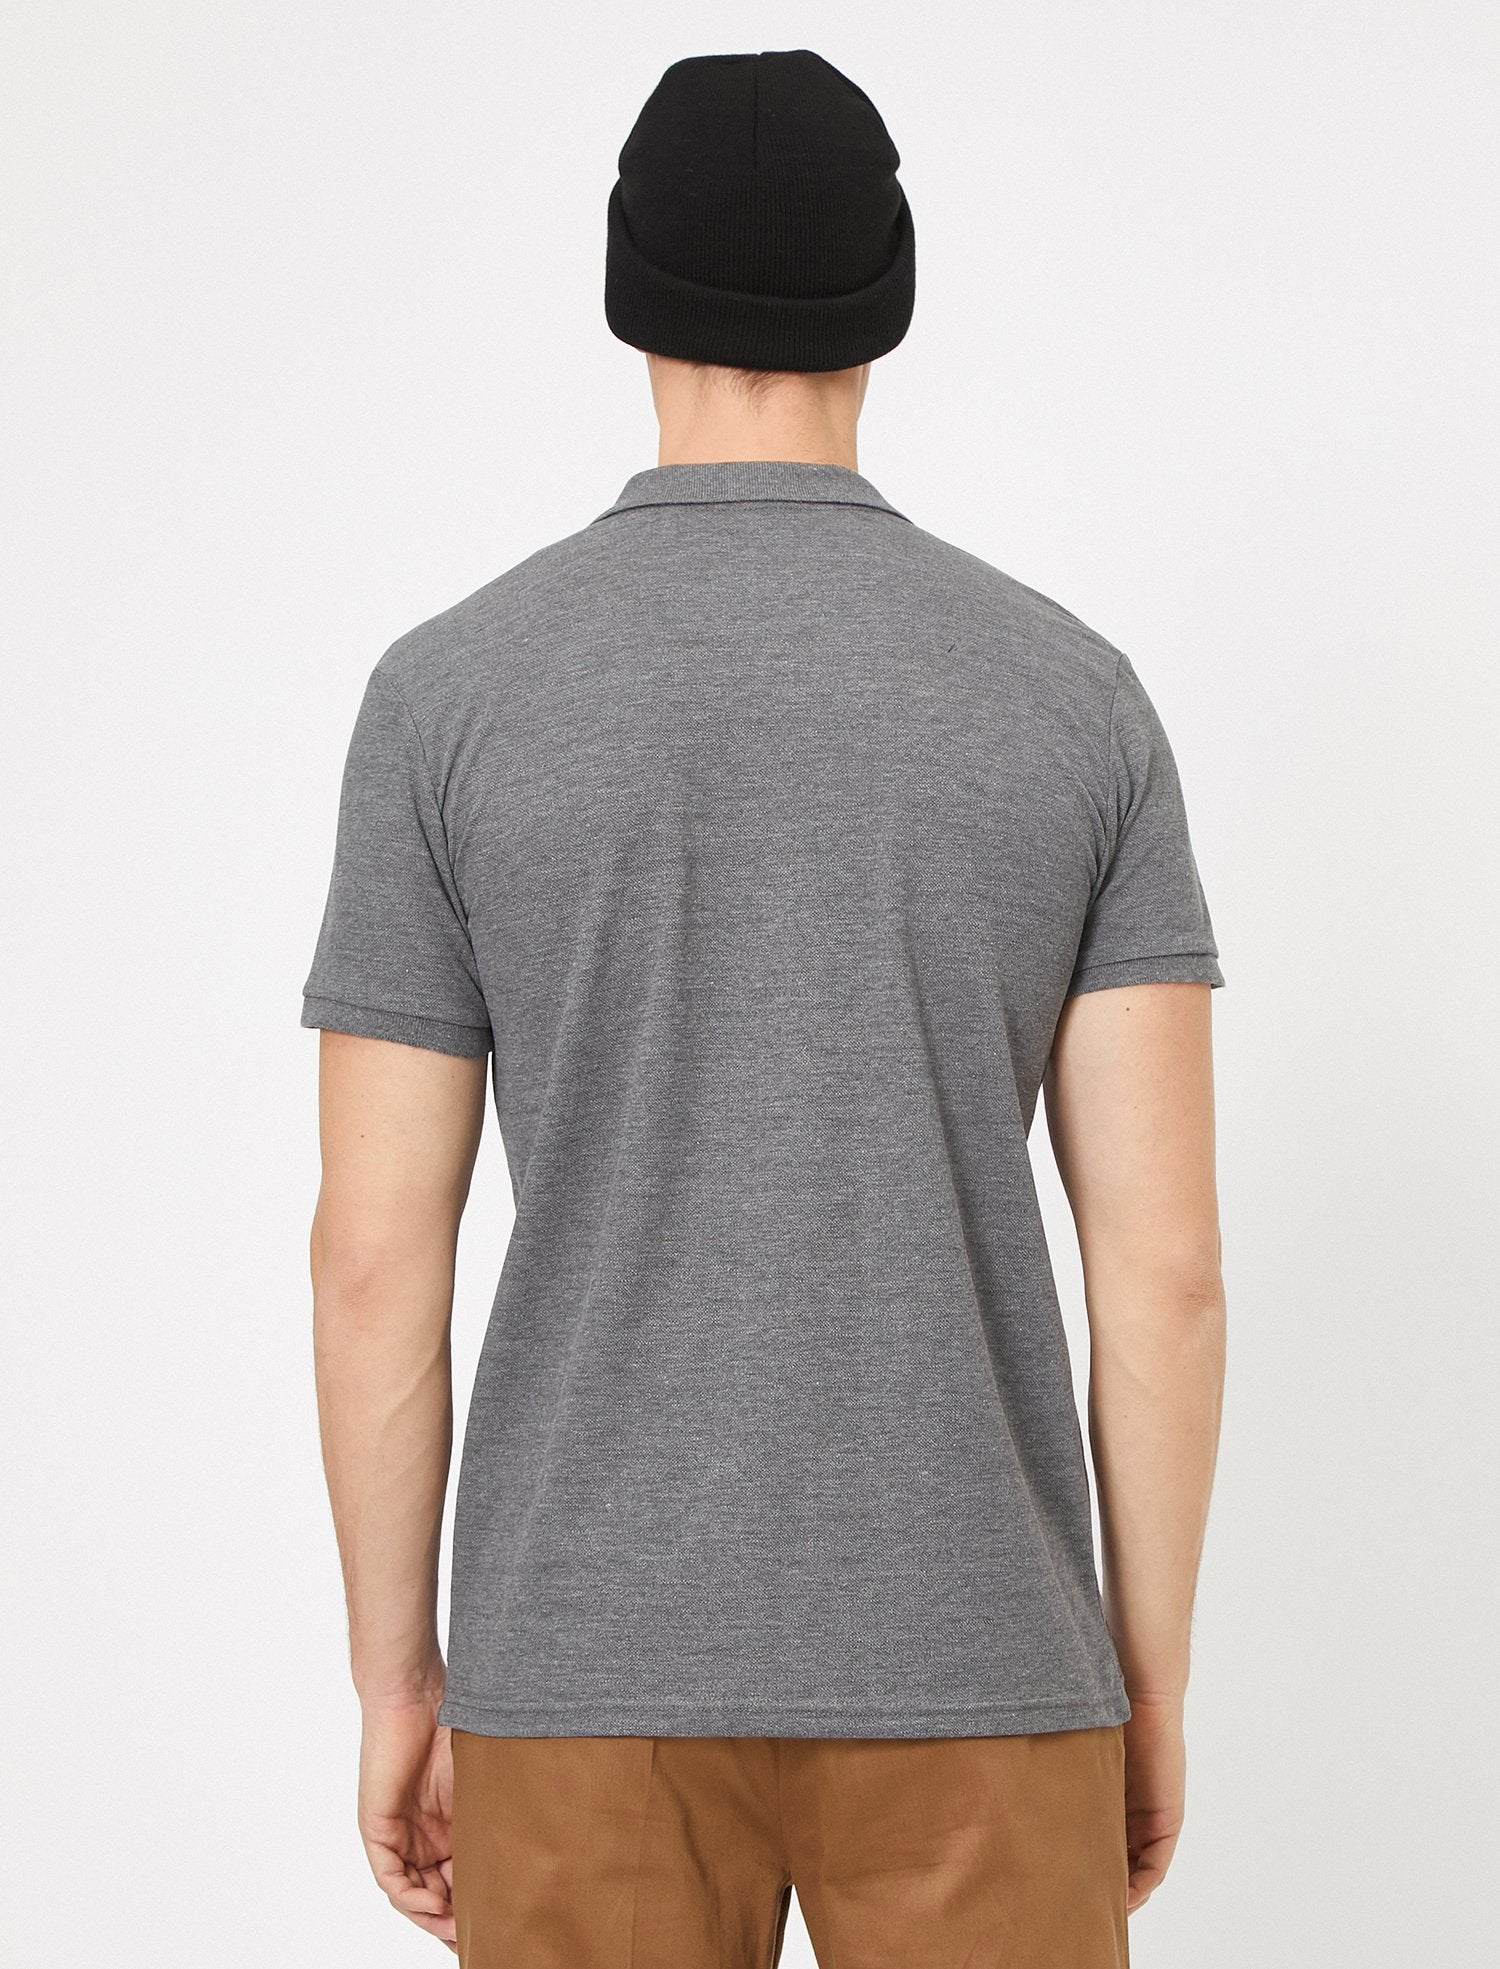 Pique Polo Shirt in Heather Gray